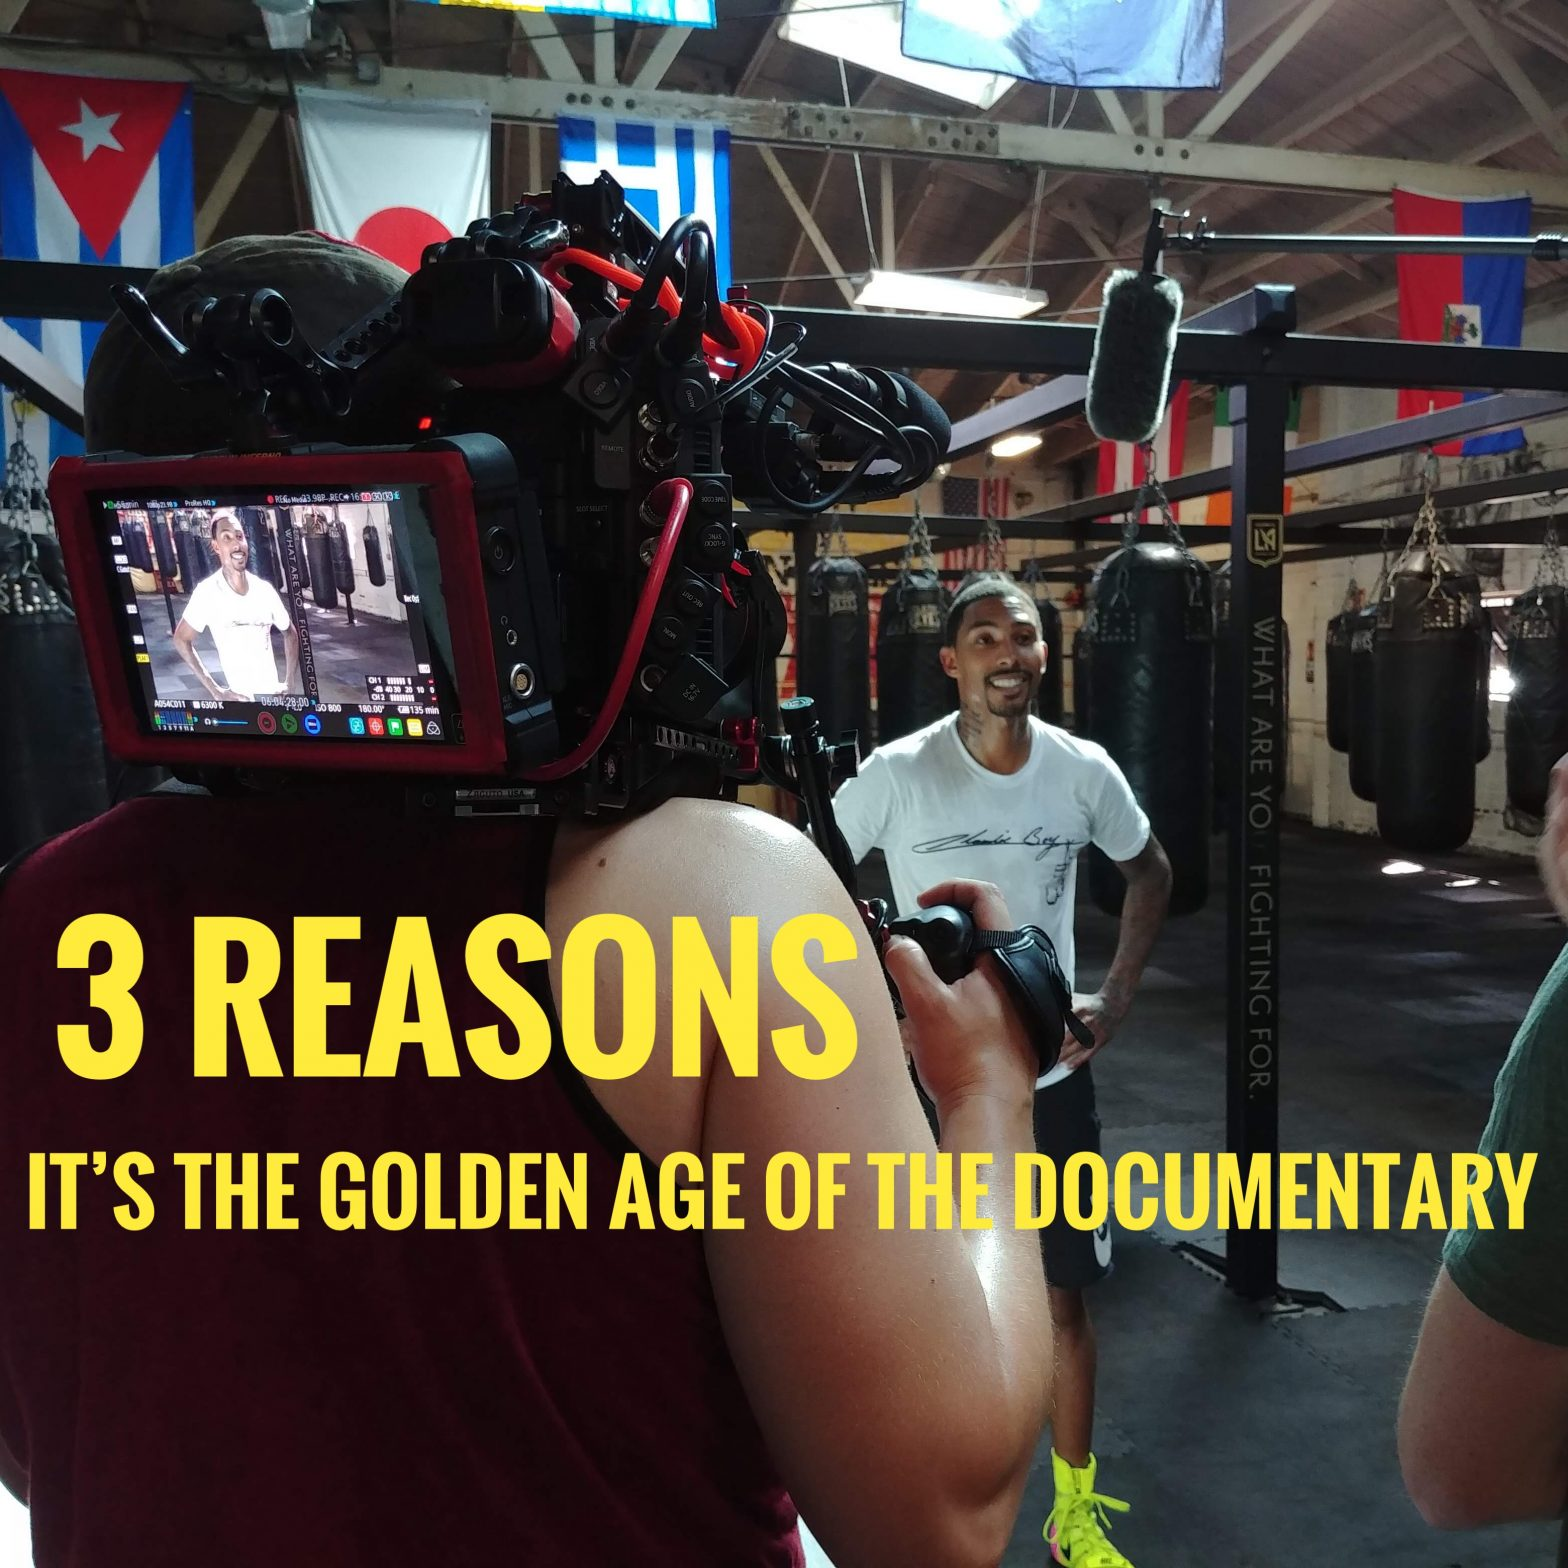 3 Reasons It's the Golden Age of the Documentary